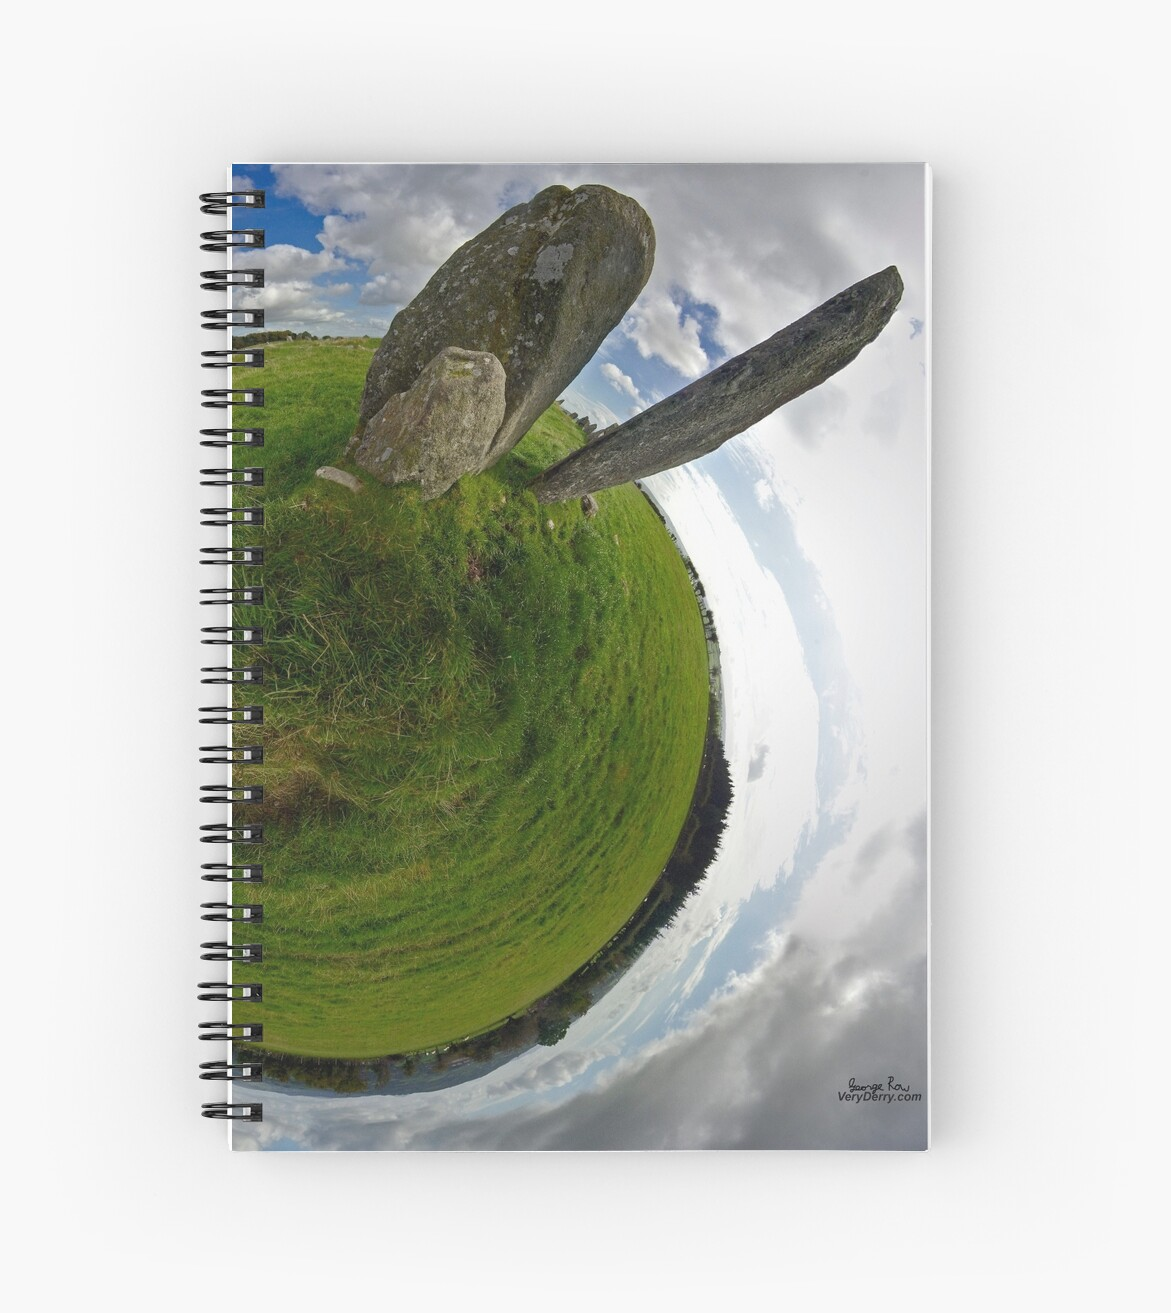 Beltany Stone Circle, Donegal by George Row